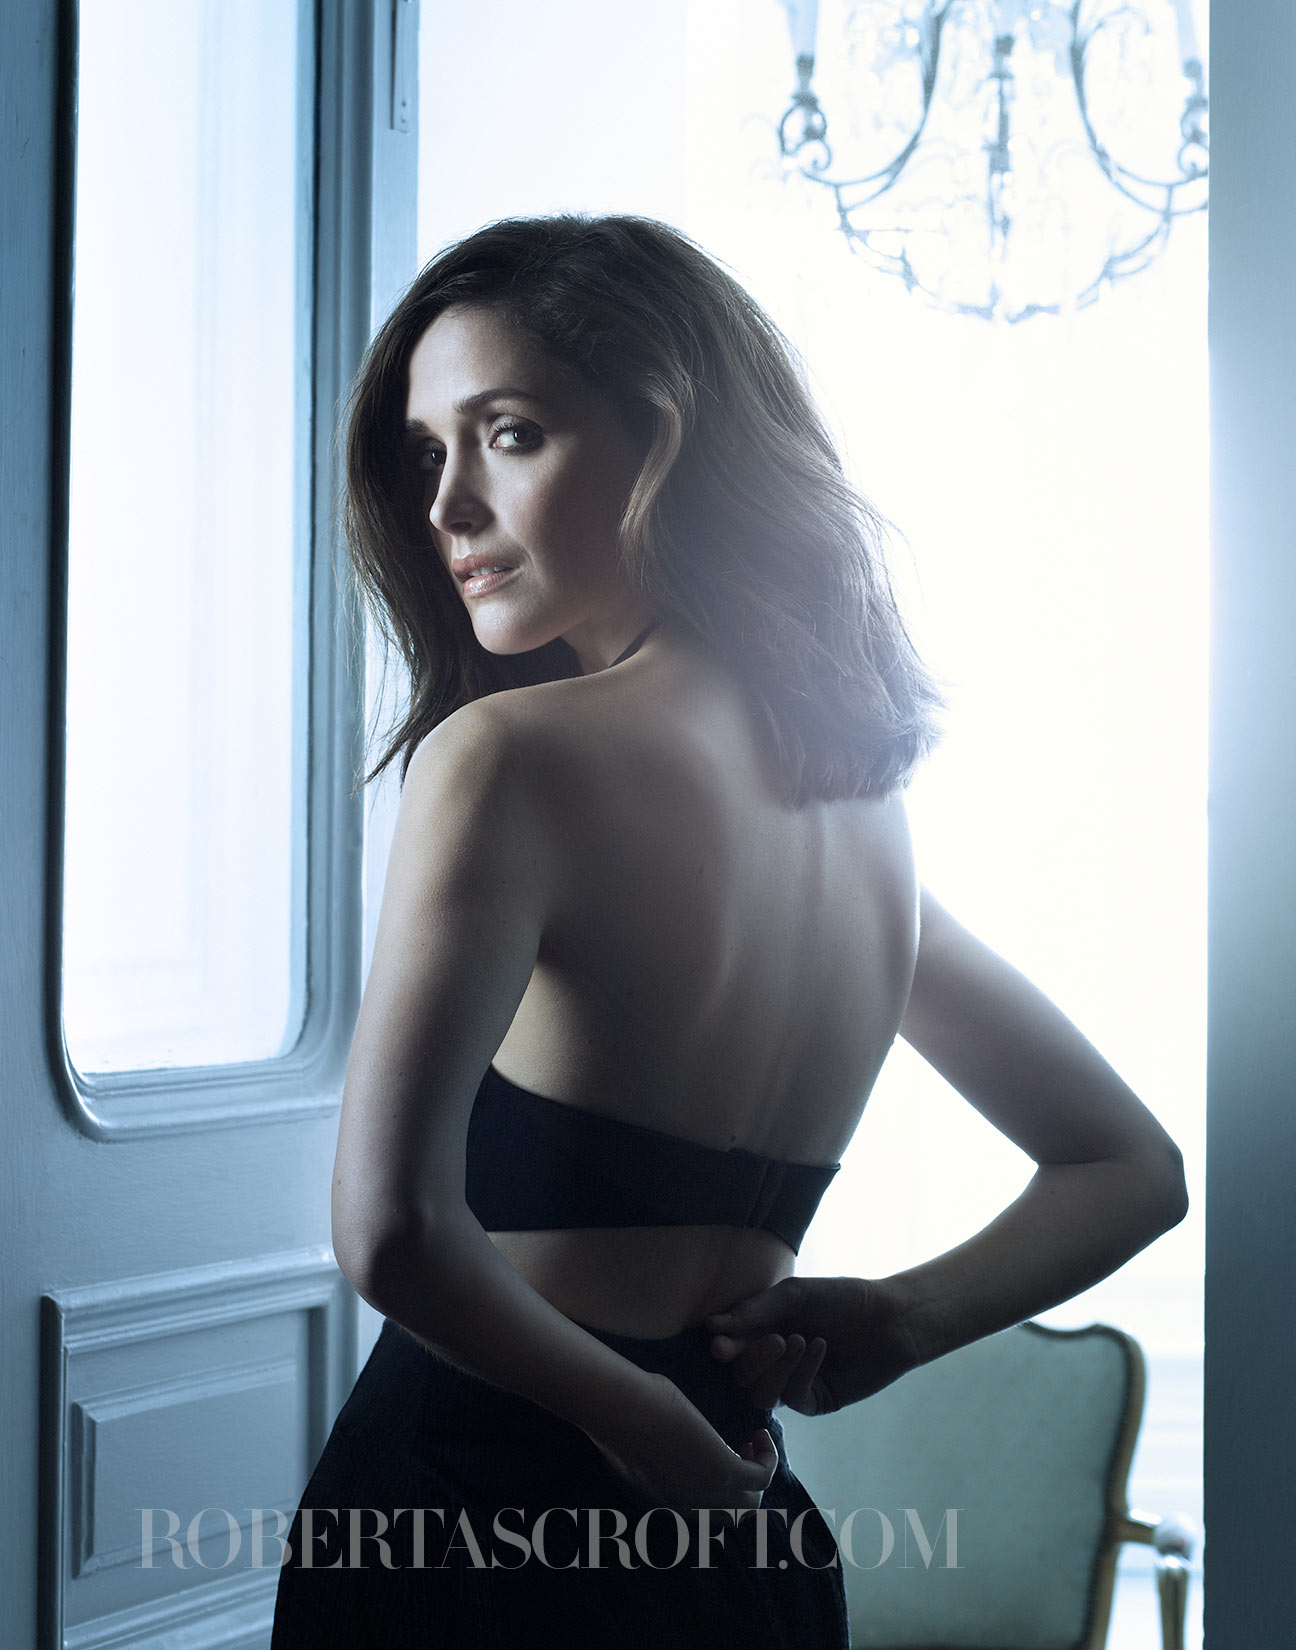 Rose-Byrne-by-Robert-Ascroft-08